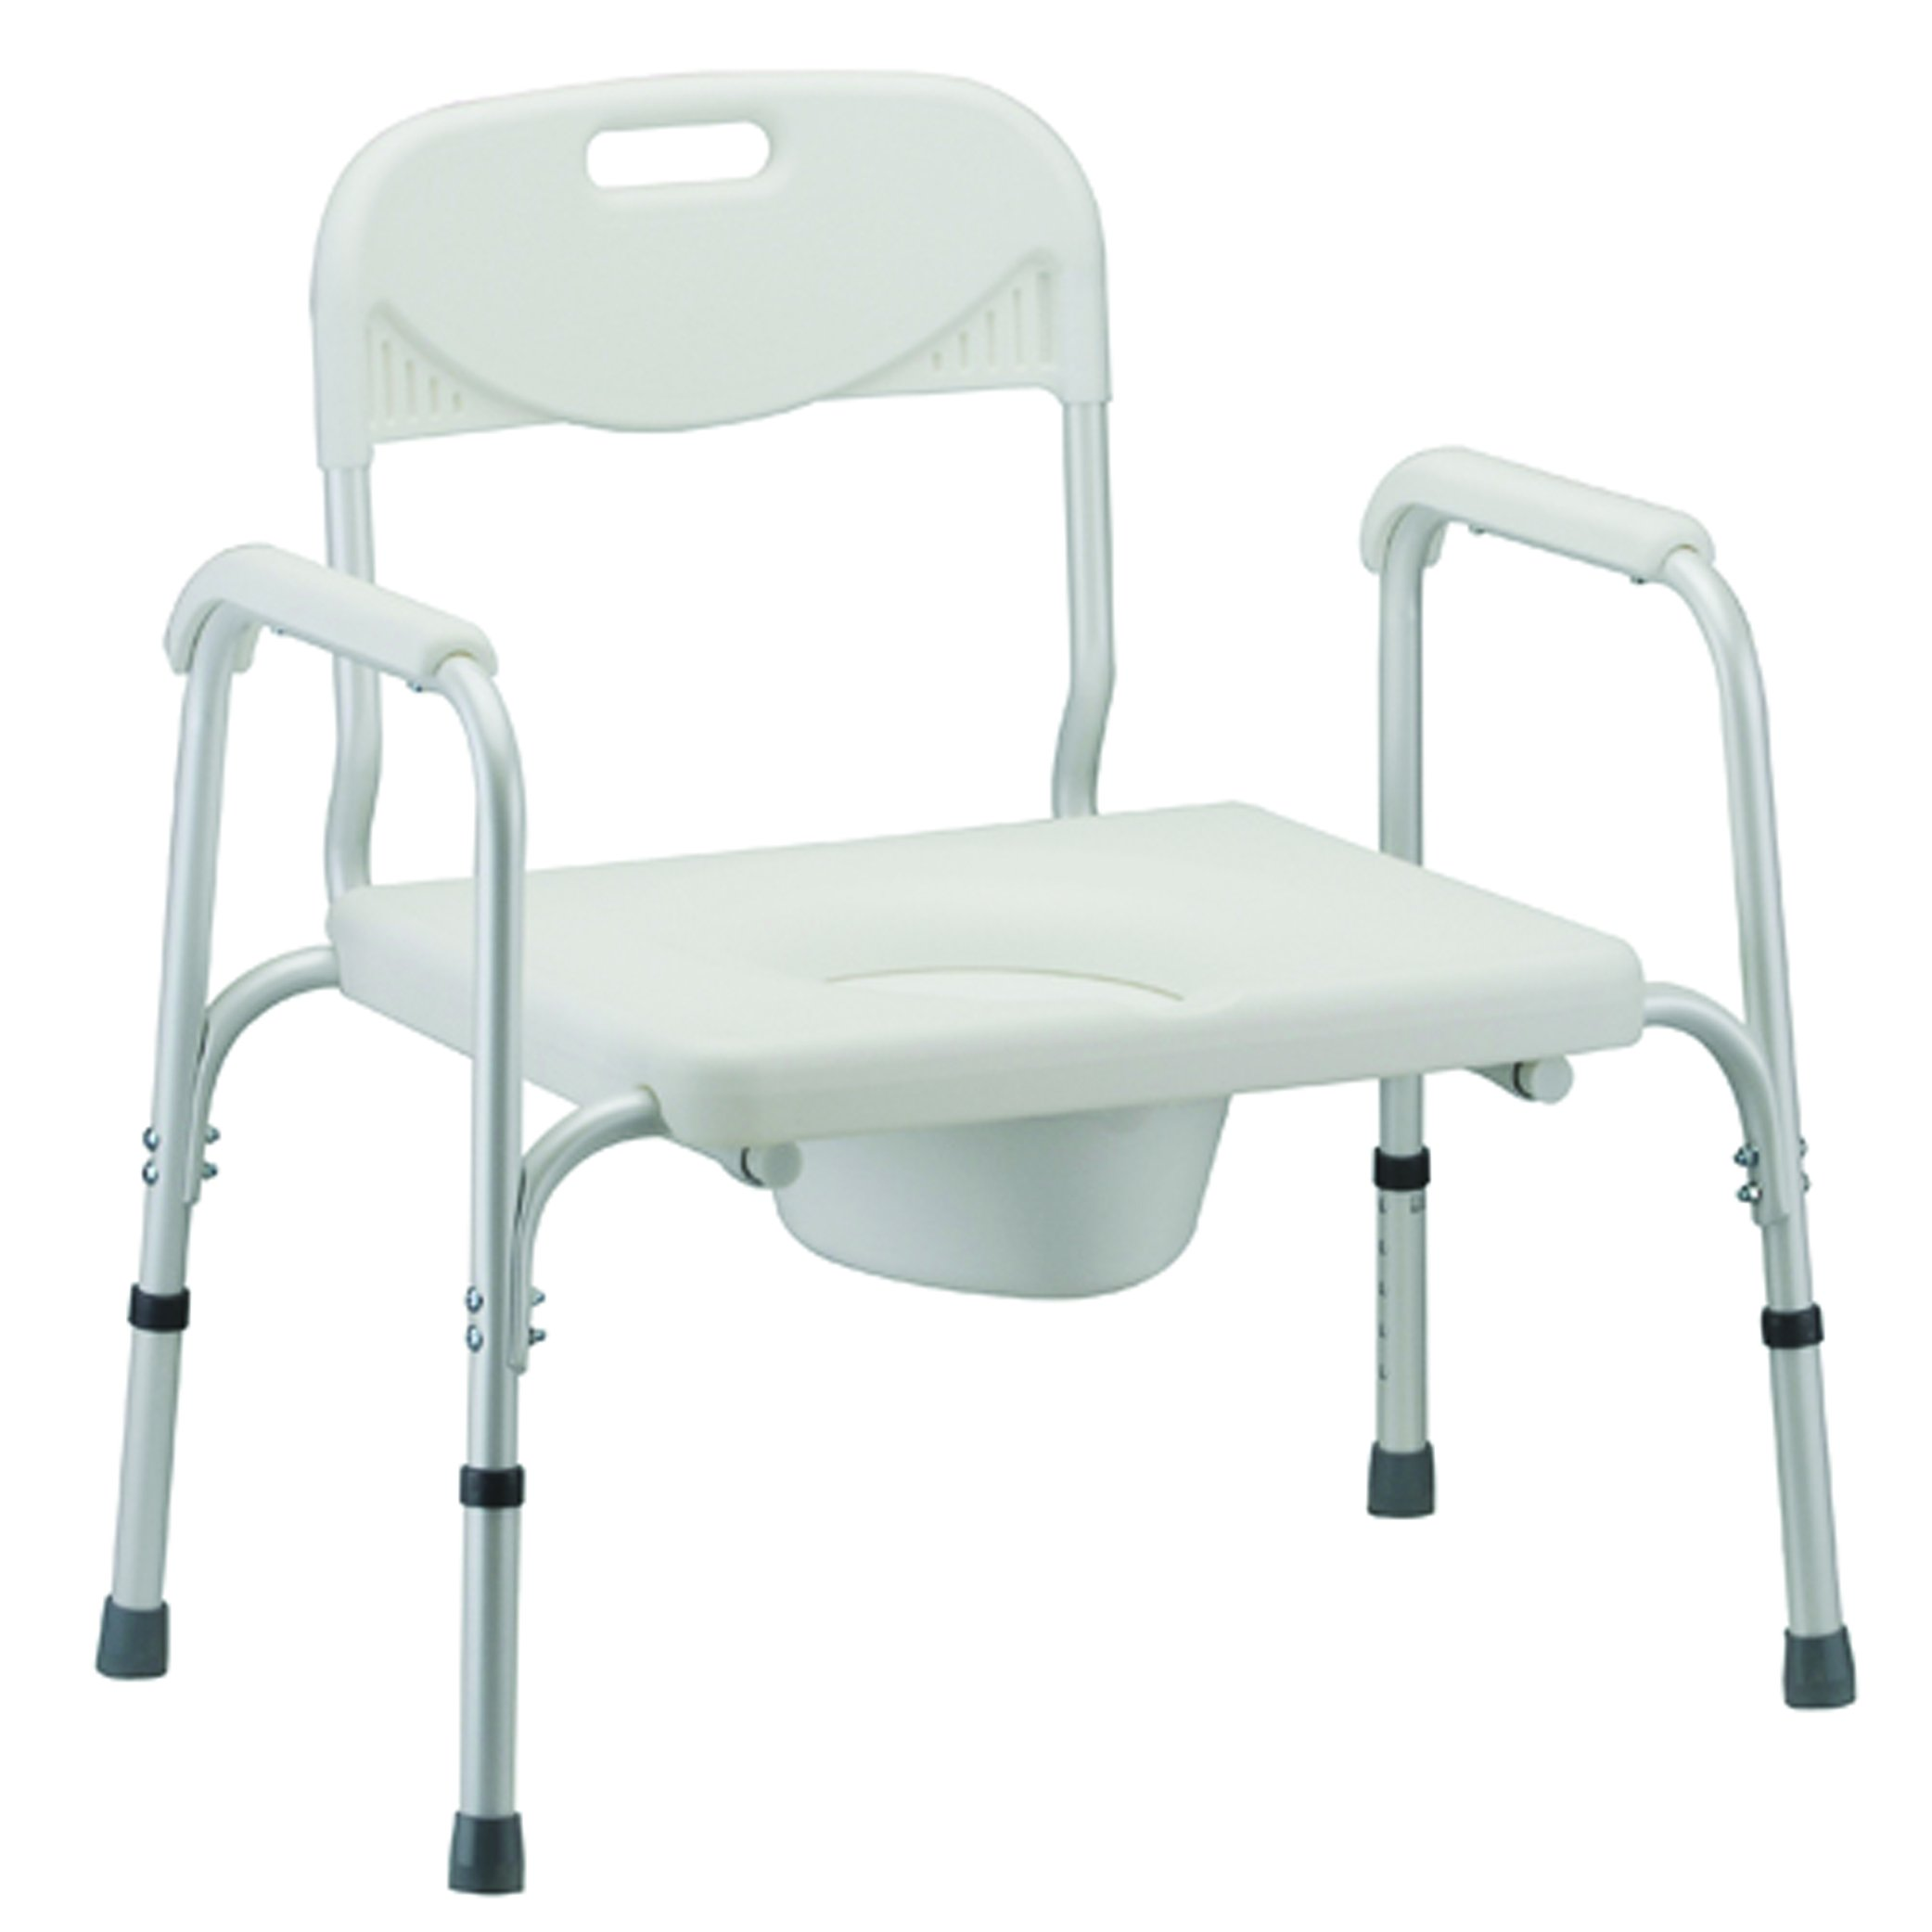 NOVA Medical Products Heavy Duty Commode with Back & Wide Seat, White, 24 Pound